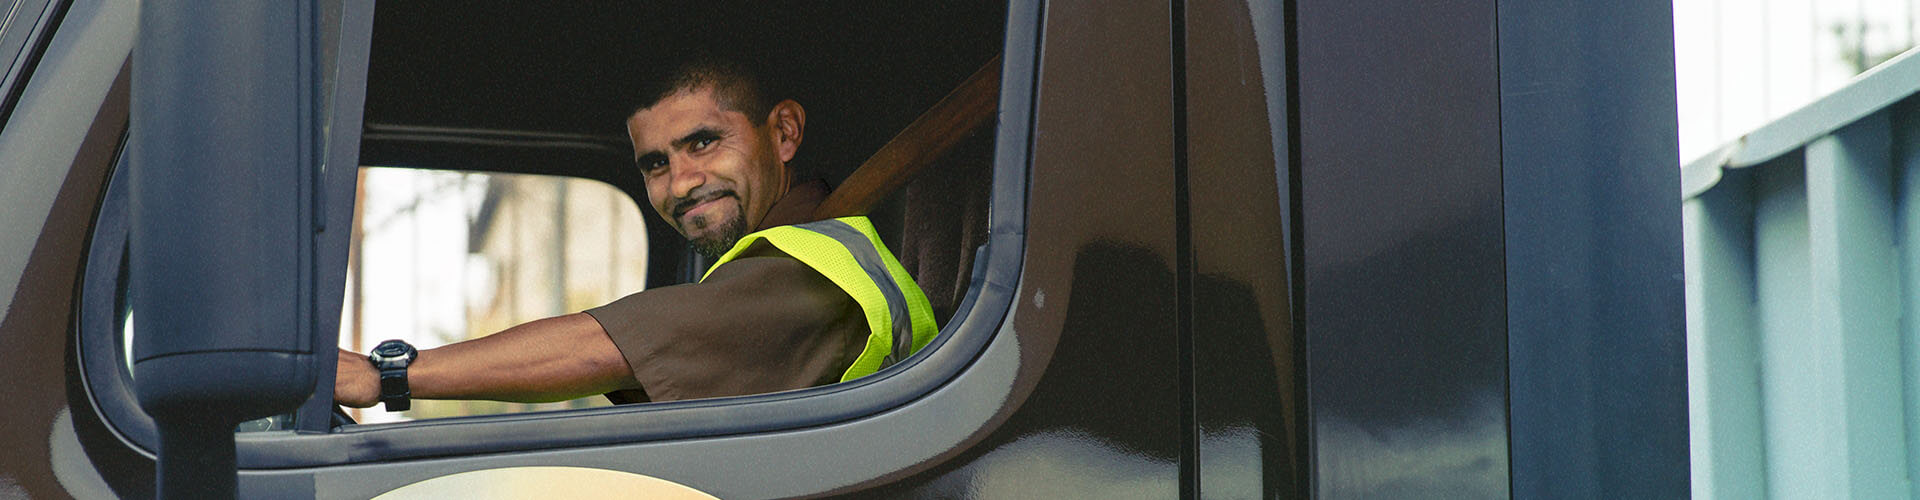 Man smiling while sitting in semi truck